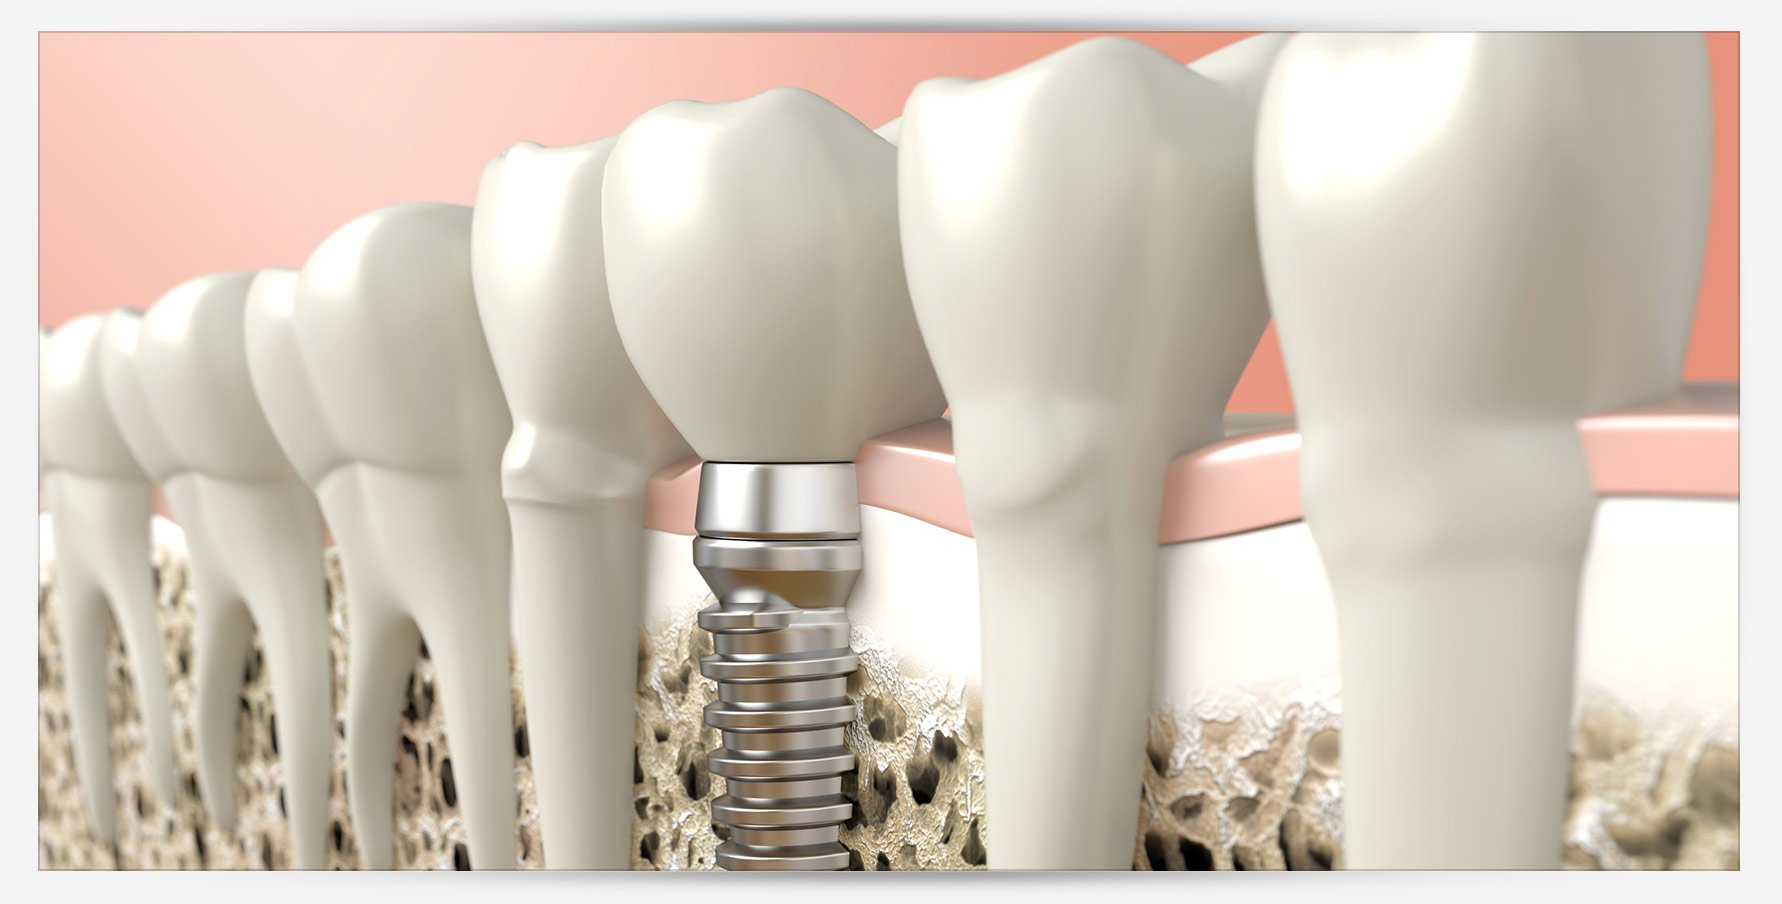 blue apple dental tooth implants